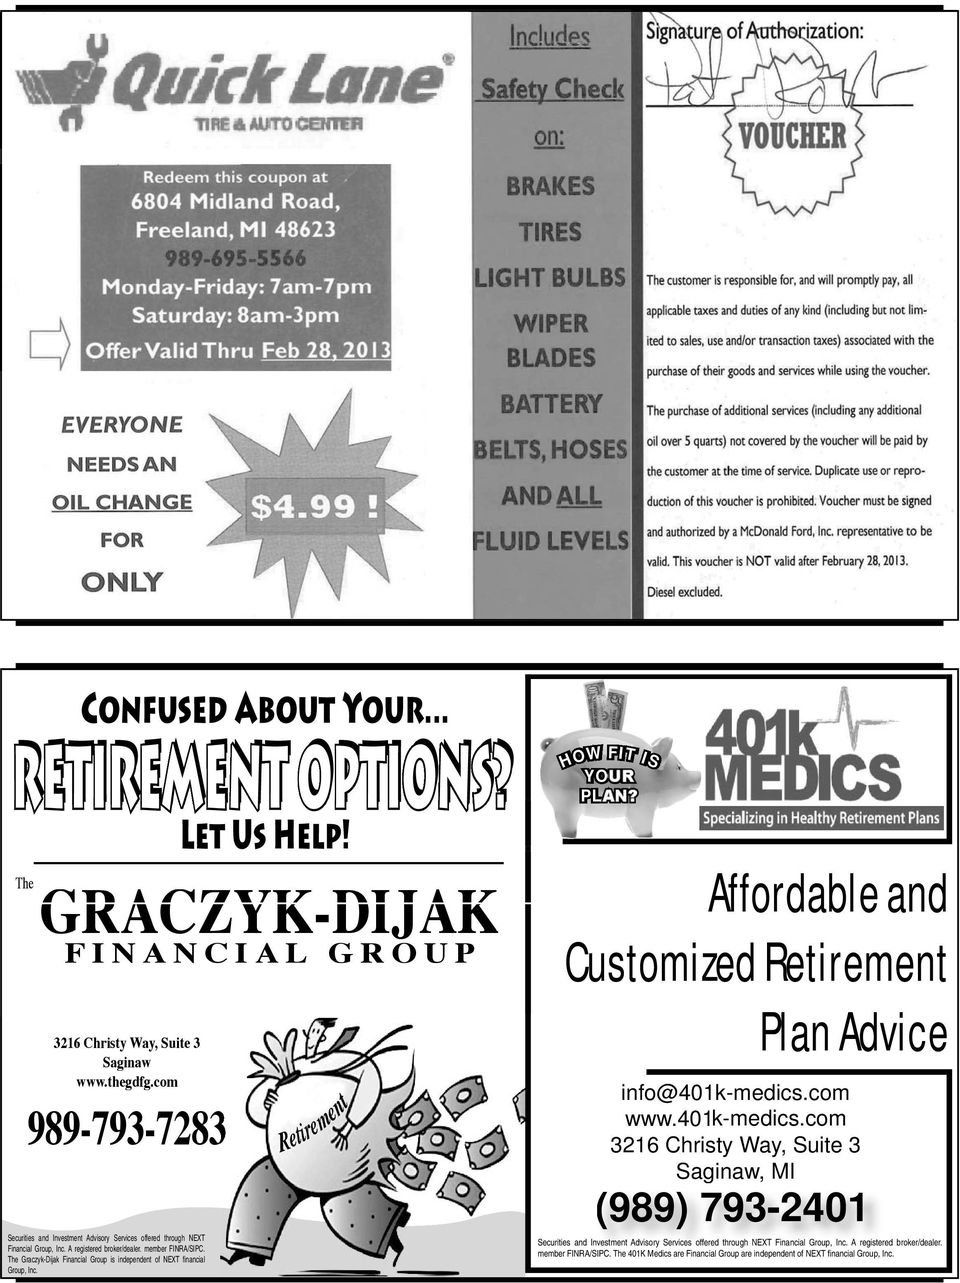 The Graczyk-Dijak Financial Group is independent of NEXT financial Group, Inc. Let Us Help! GRACZYK-DIJAK FINANC IAL GROUP r t r Reti e ment HOW FIT IS YOUR PLAN?